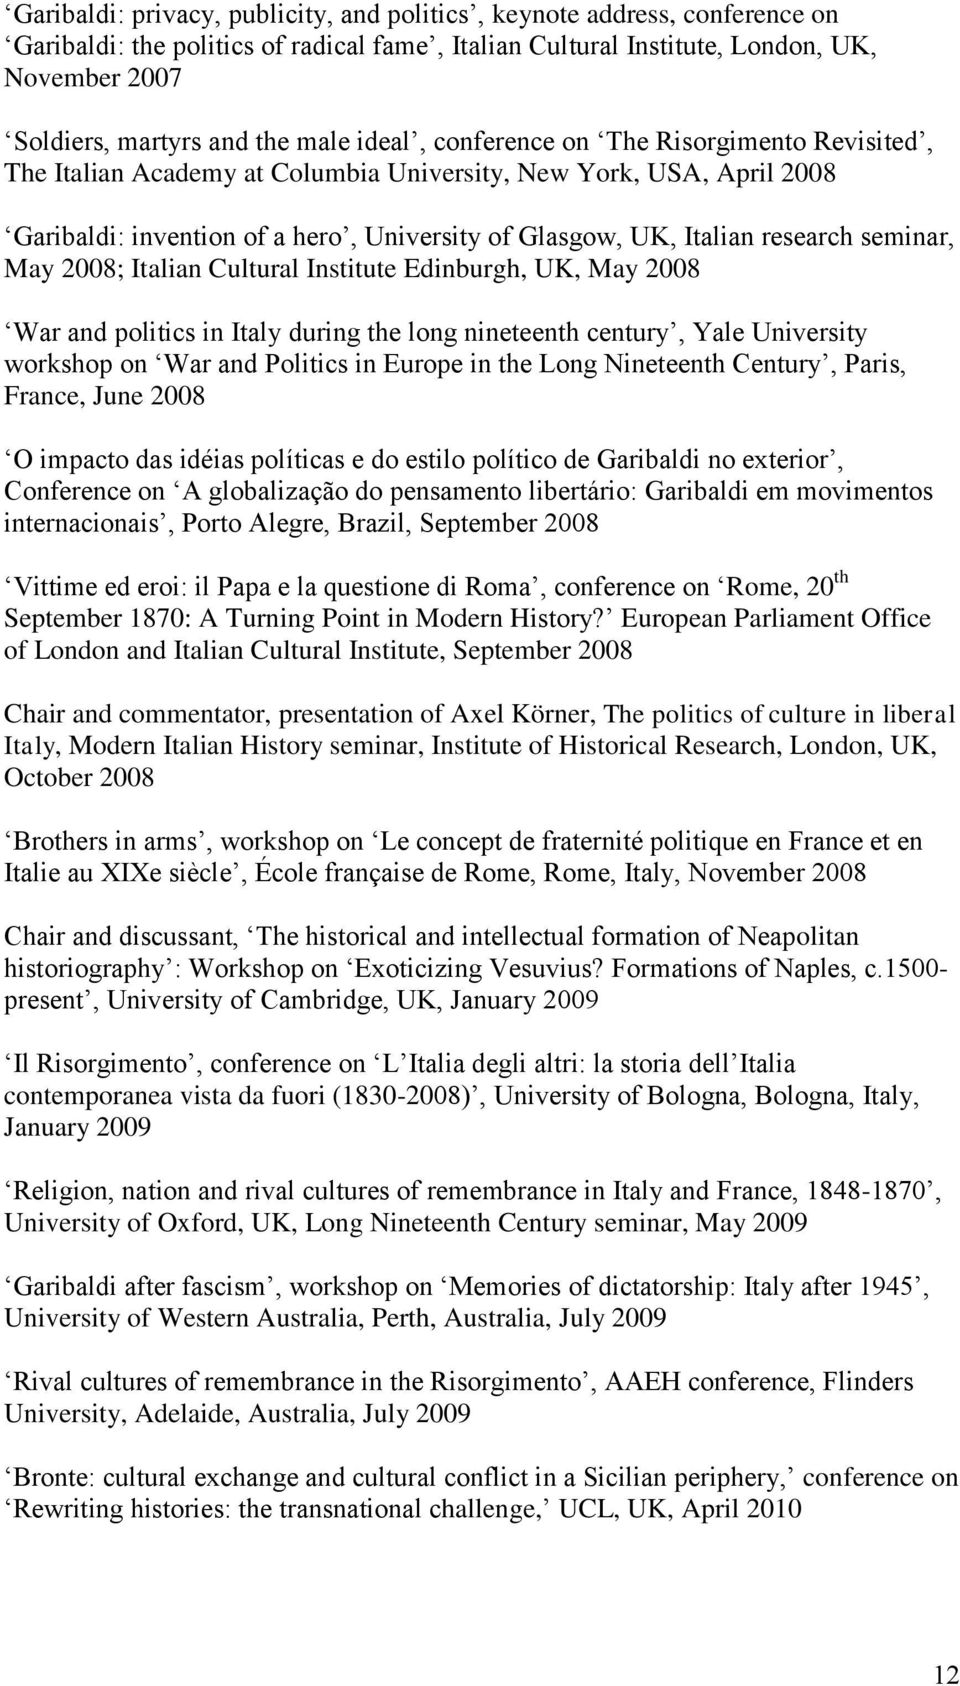 seminar, May 2008; Italian Cultural Institute Edinburgh, UK, May 2008 War and politics in Italy during the long nineteenth century, Yale University workshop on War and Politics in Europe in the Long